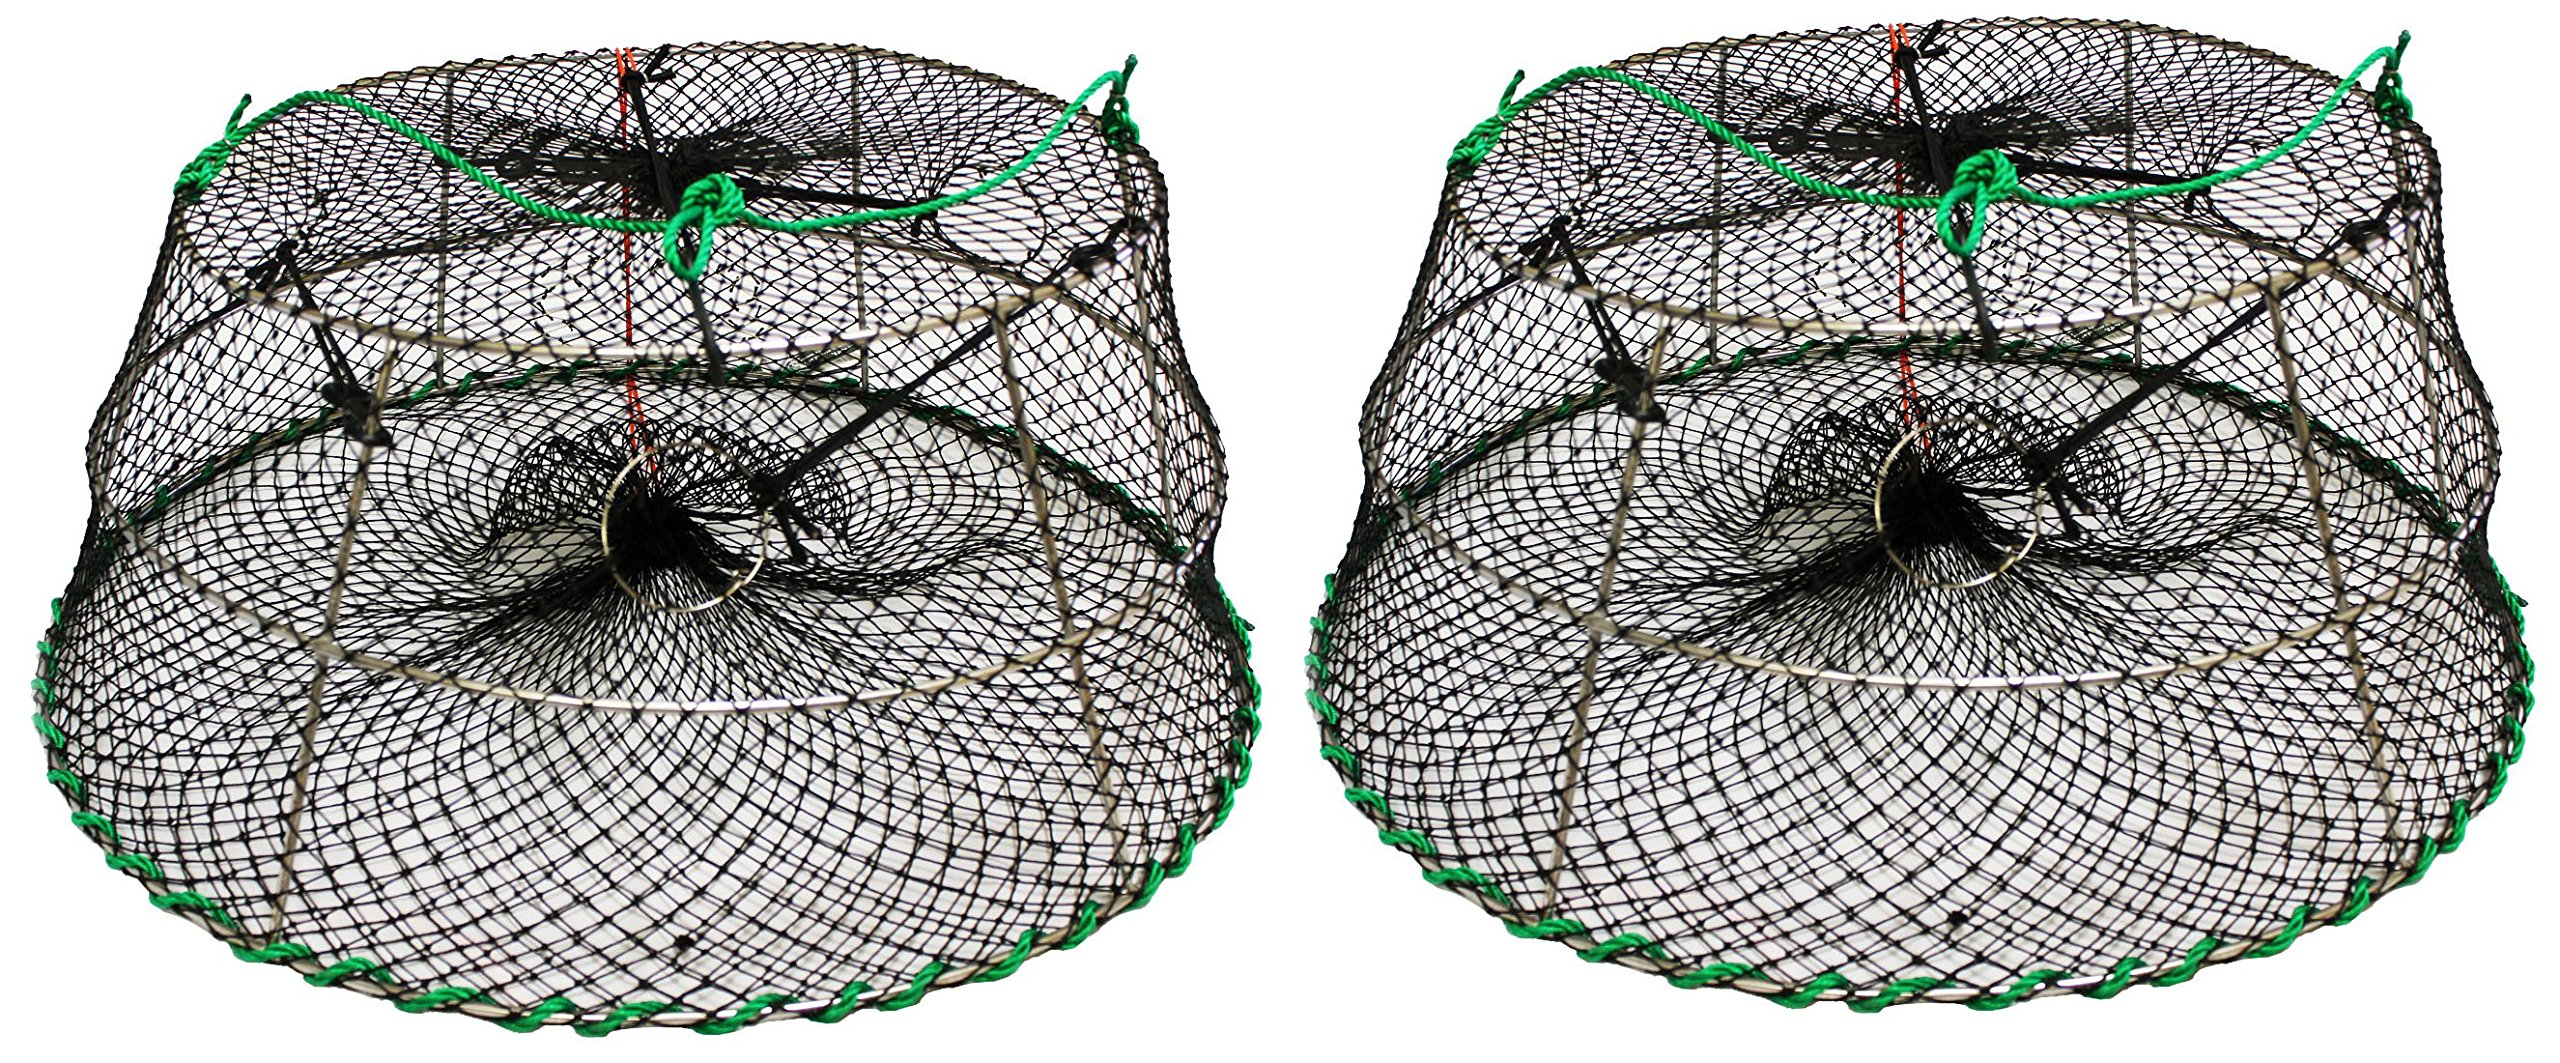 2-Pack of KUFA Sports Tower Style Stainless Steel Prawn trap (Trap Size: Ø30''xØ20''x12''; Stretched Mesh size: 1-1/8'') CT76x2 by KUFA Sports